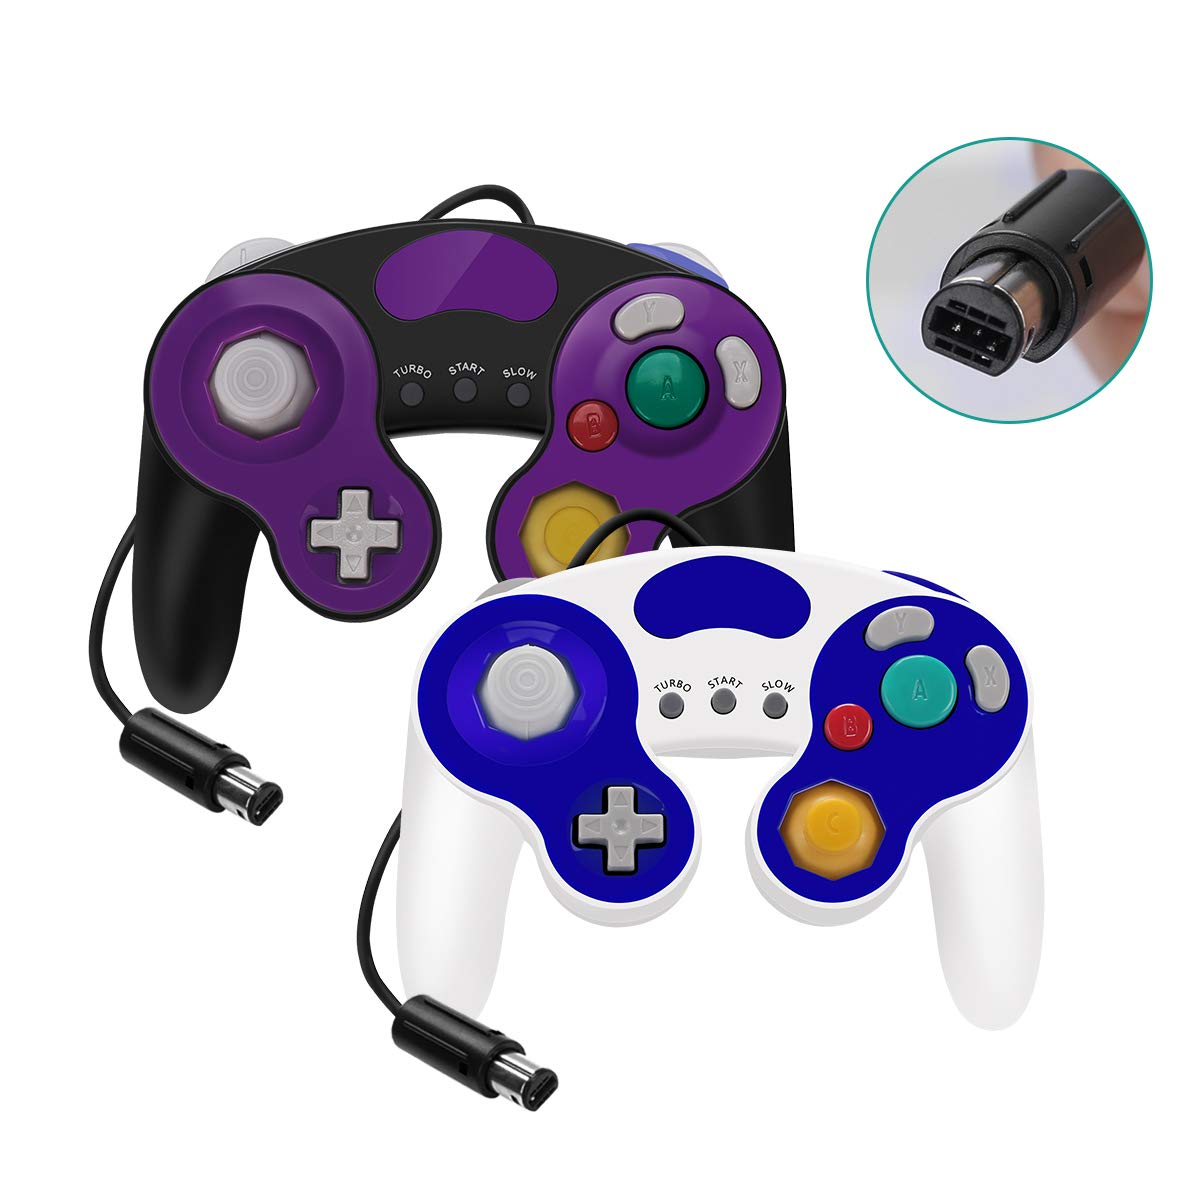 Nice Controllers - 2 Per Pack - Excellent Price - Can Be Used On Multiple Nintendo Consoles With Adapter